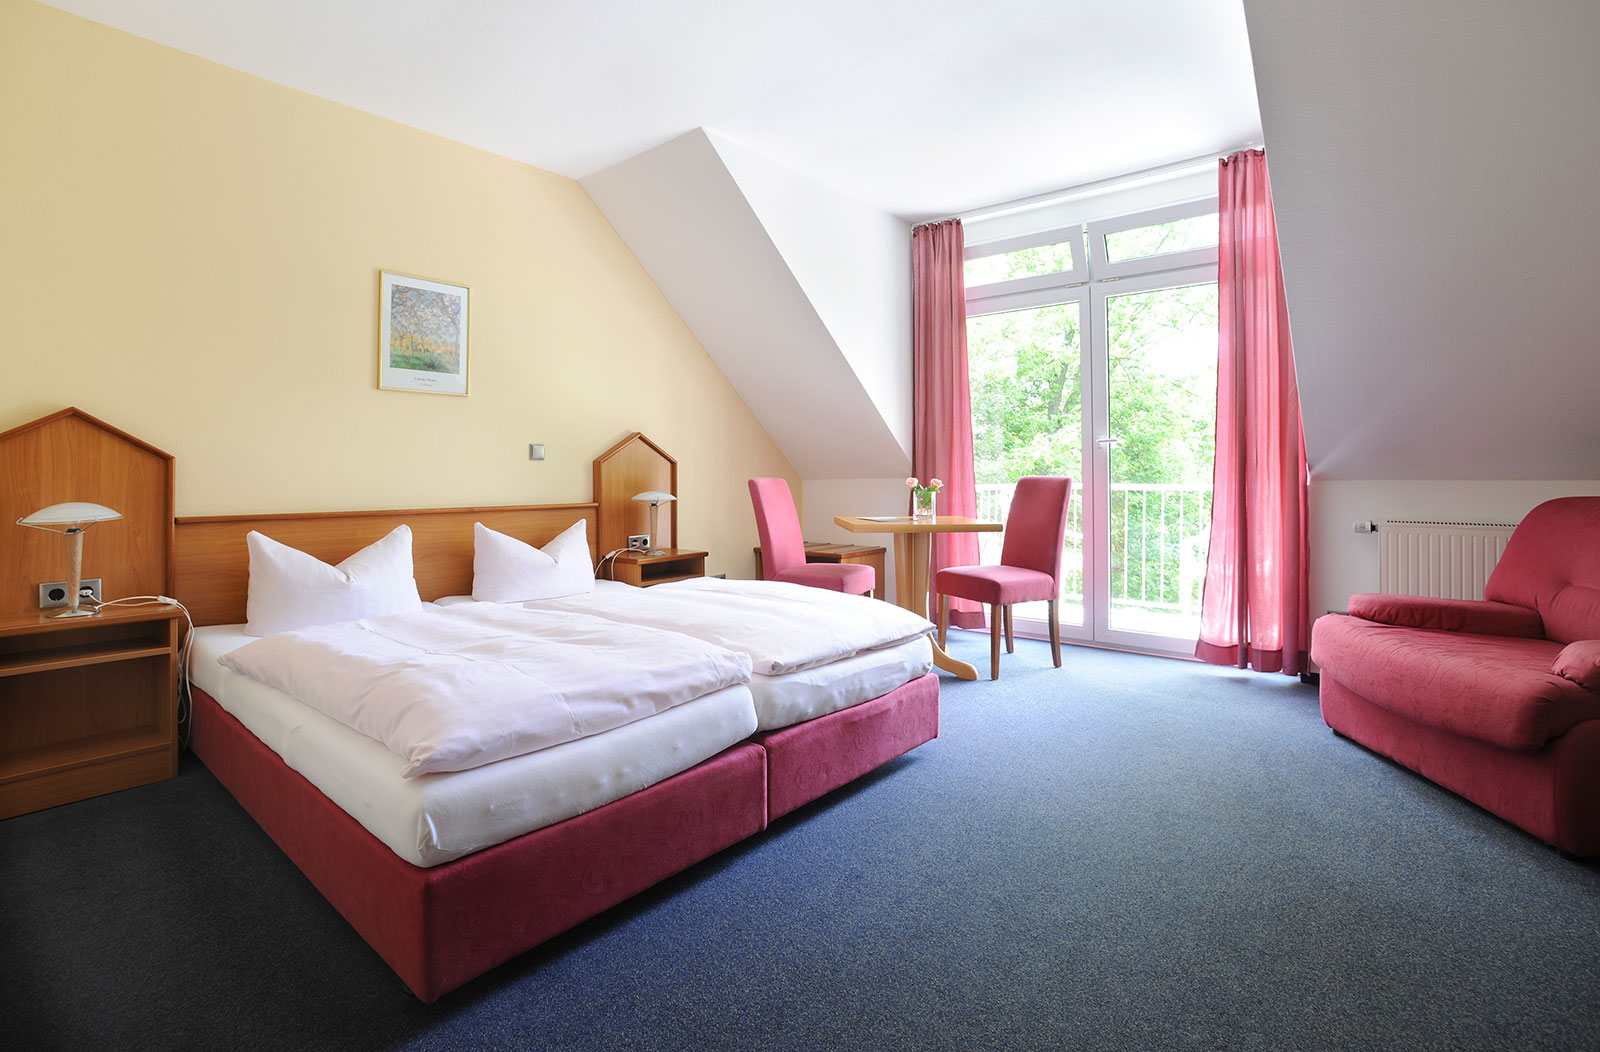 hotels_zur-post-deu_left-image